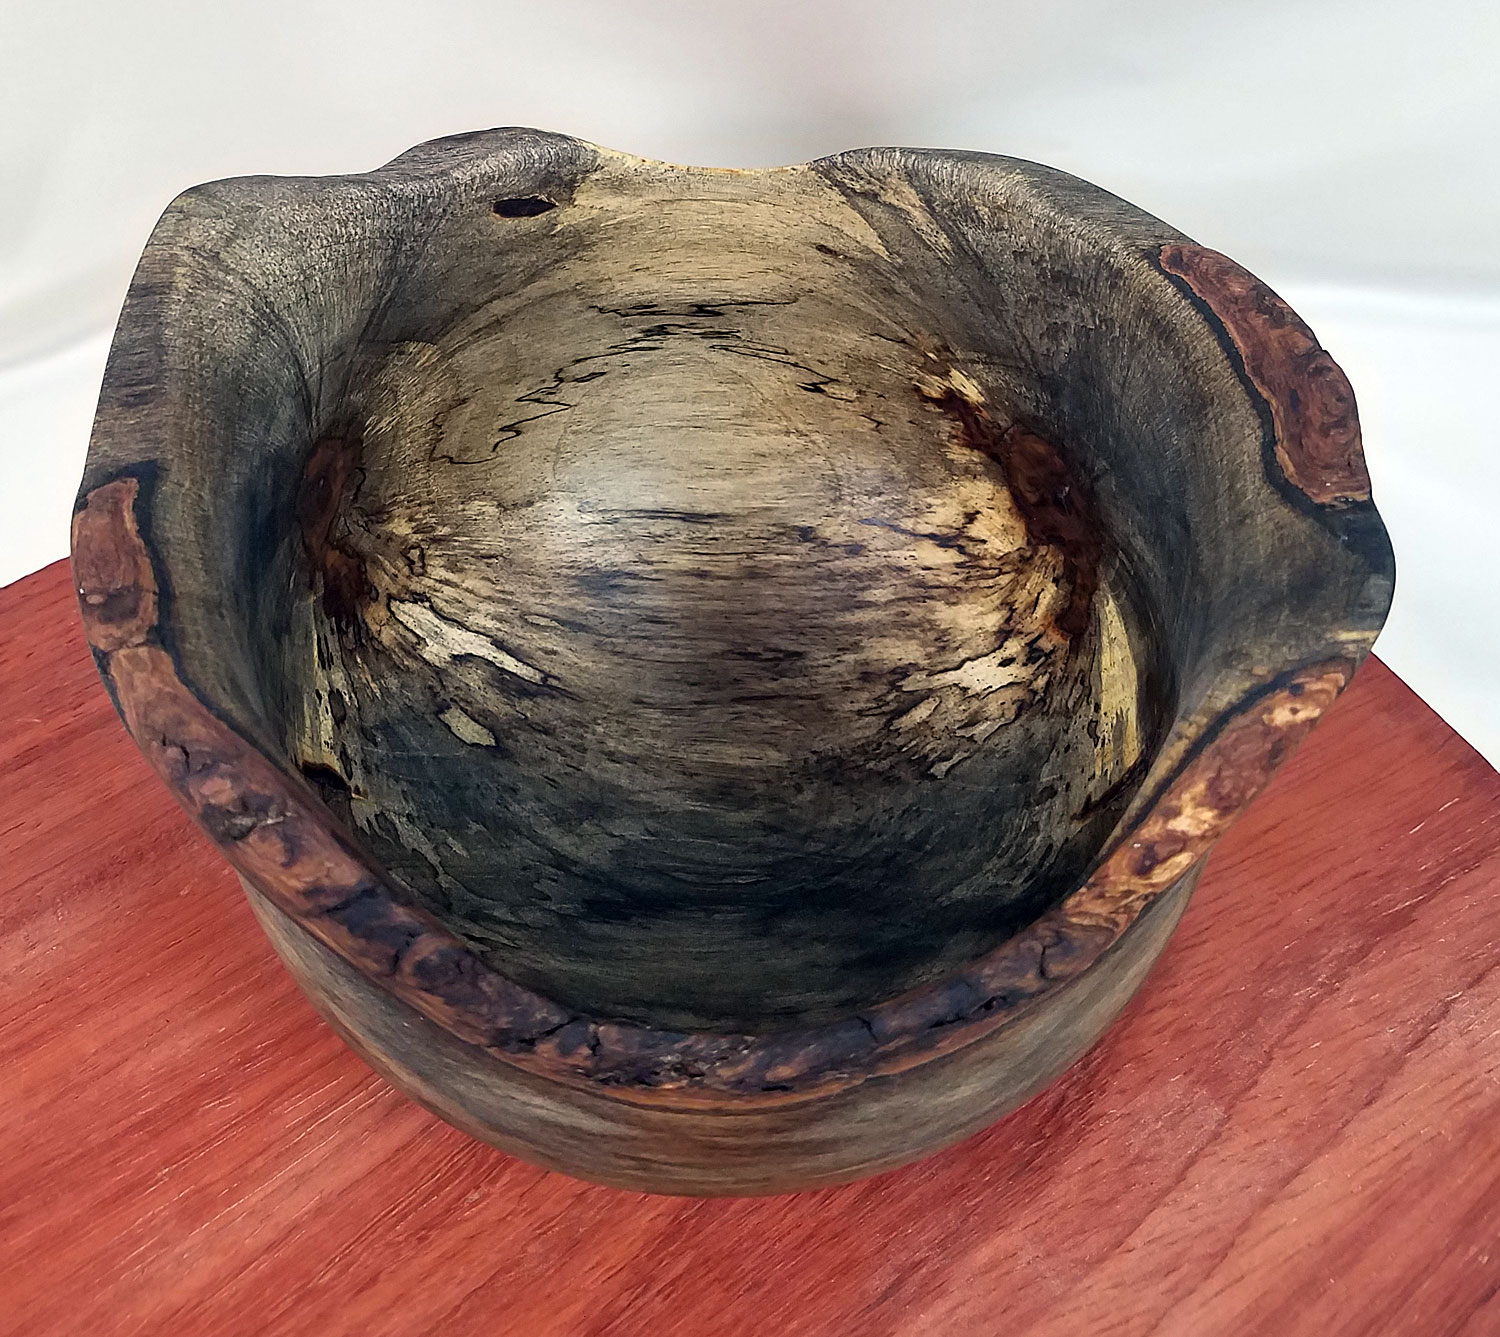 Spalted explosion inside of the bowl looks like marble.